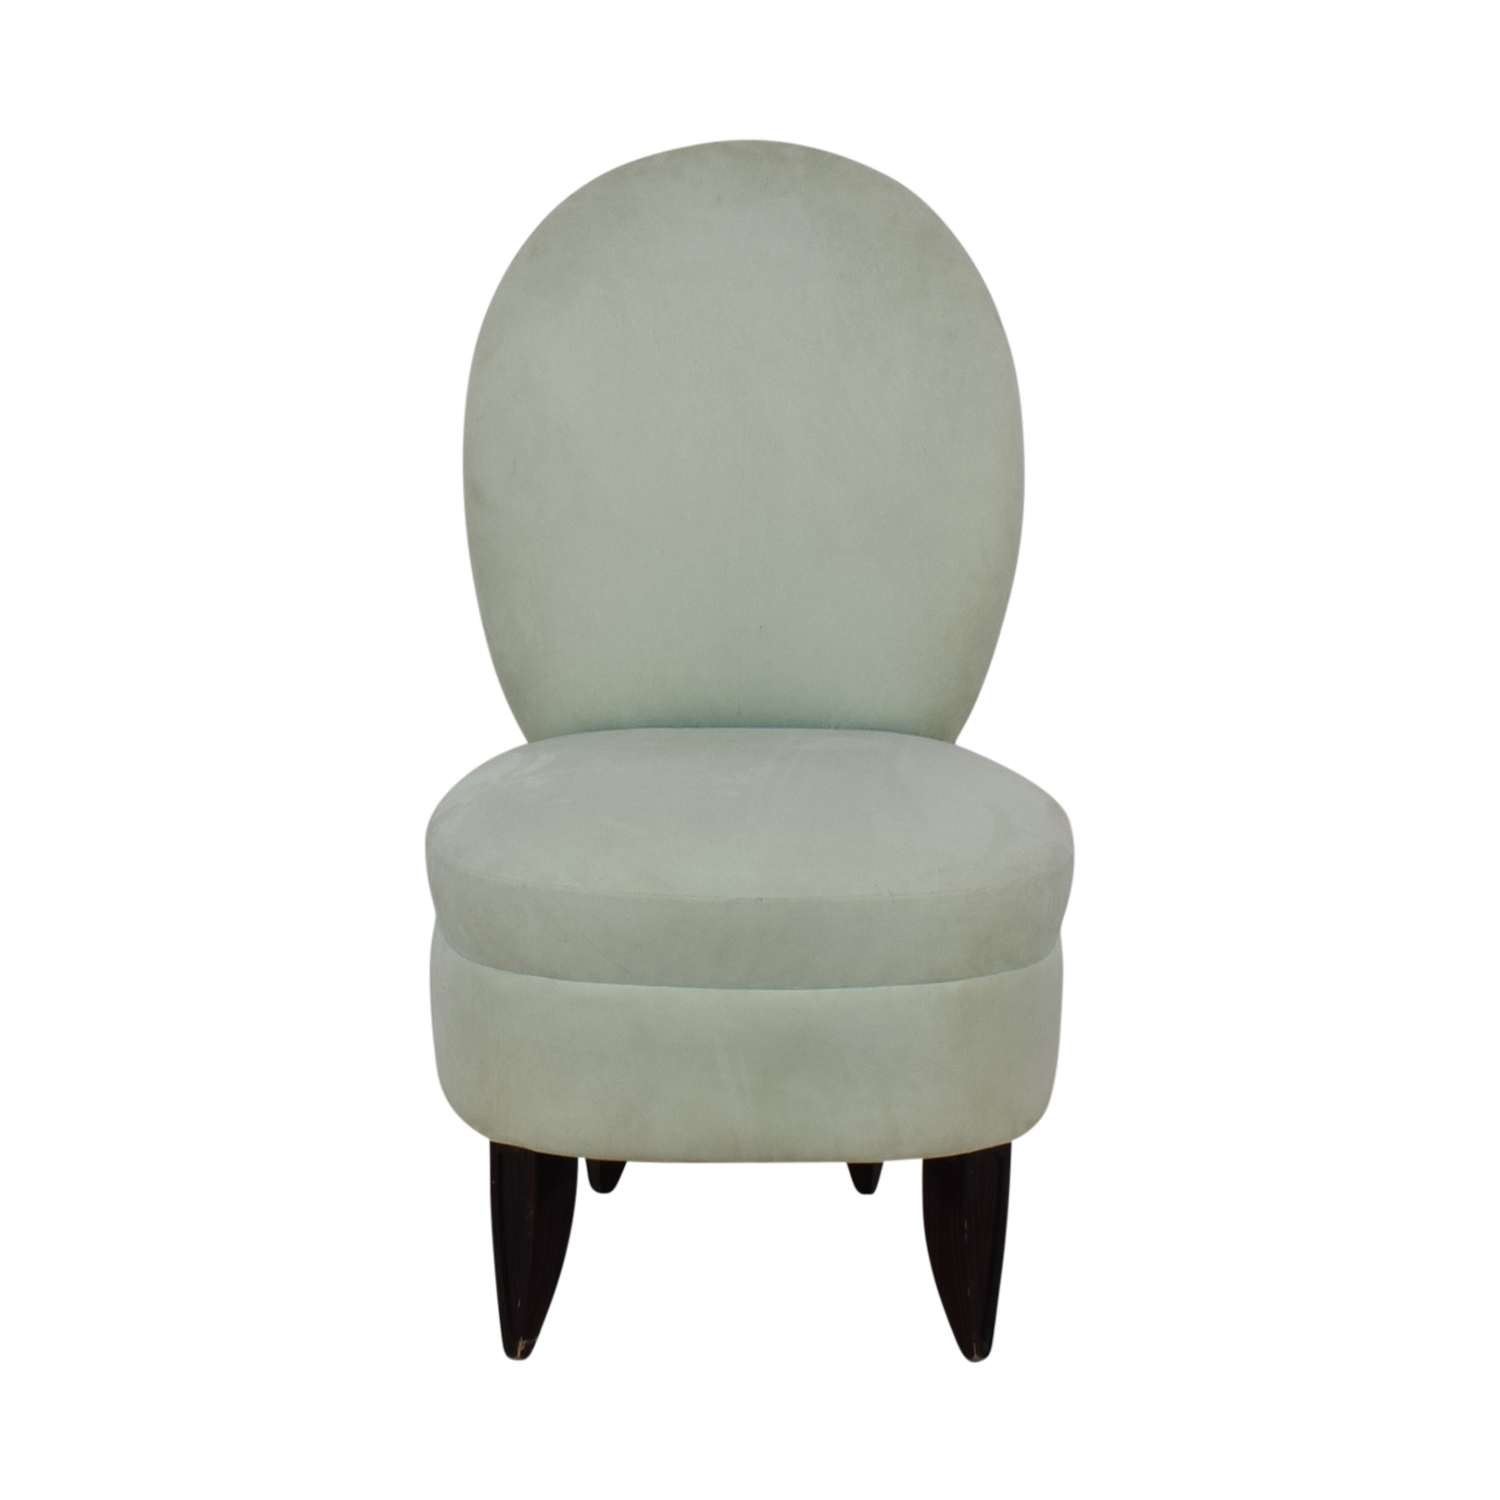 Furniture Masters Furniture Masters Green Accent Chair used